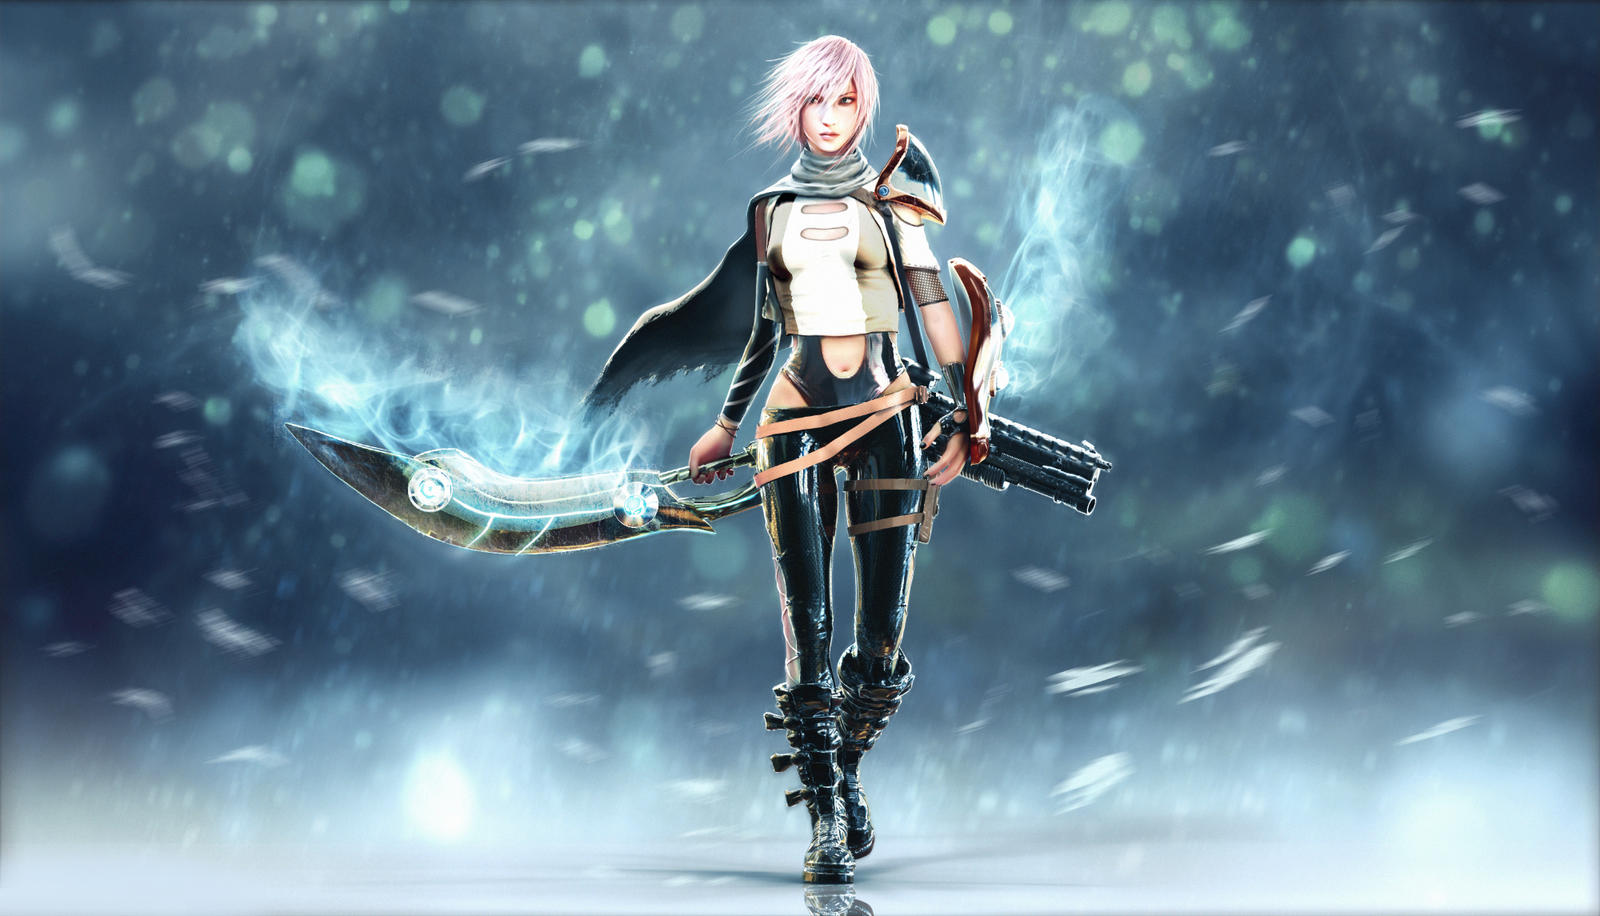 Lightning Returns v2 Contest by s0r3nGZV